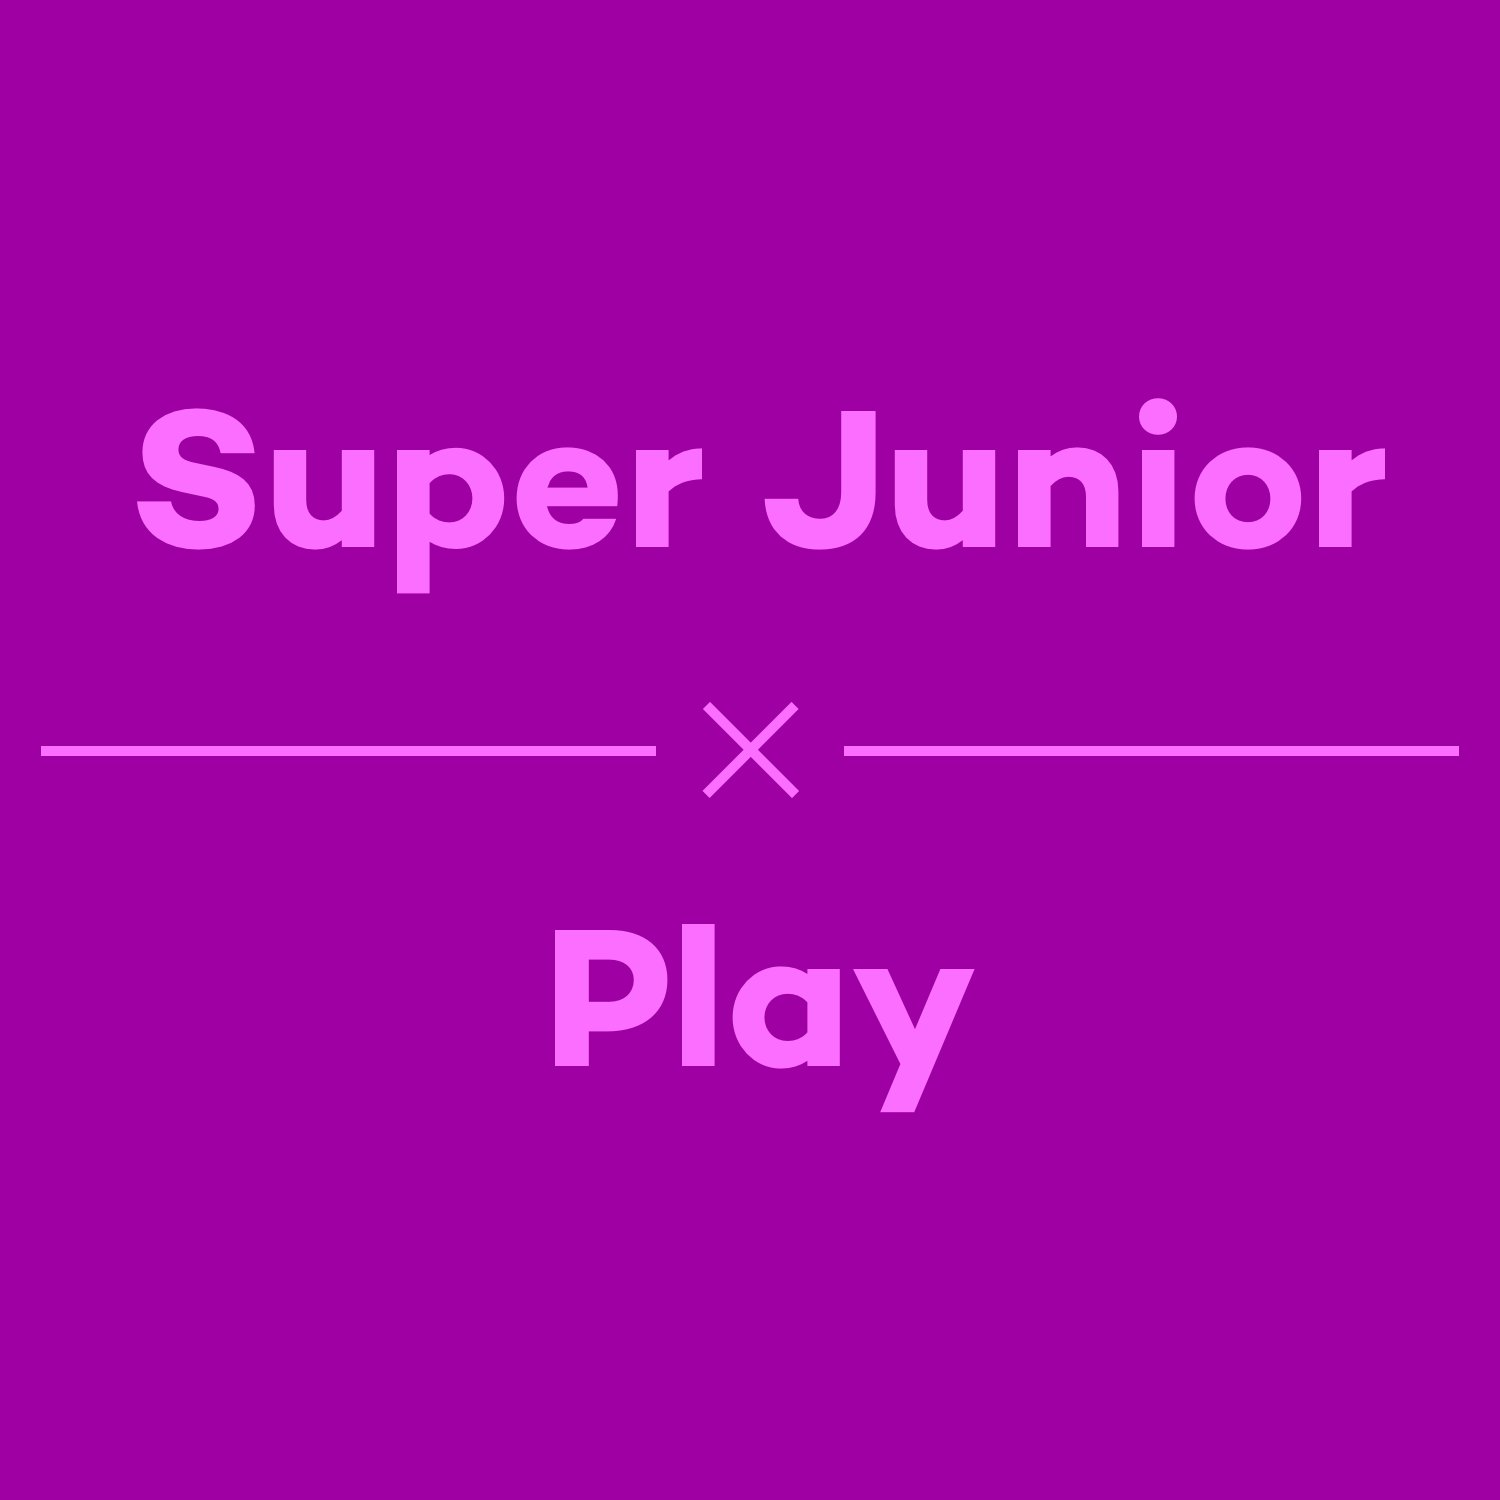 K-pop Unmuted, Super Junior, Play